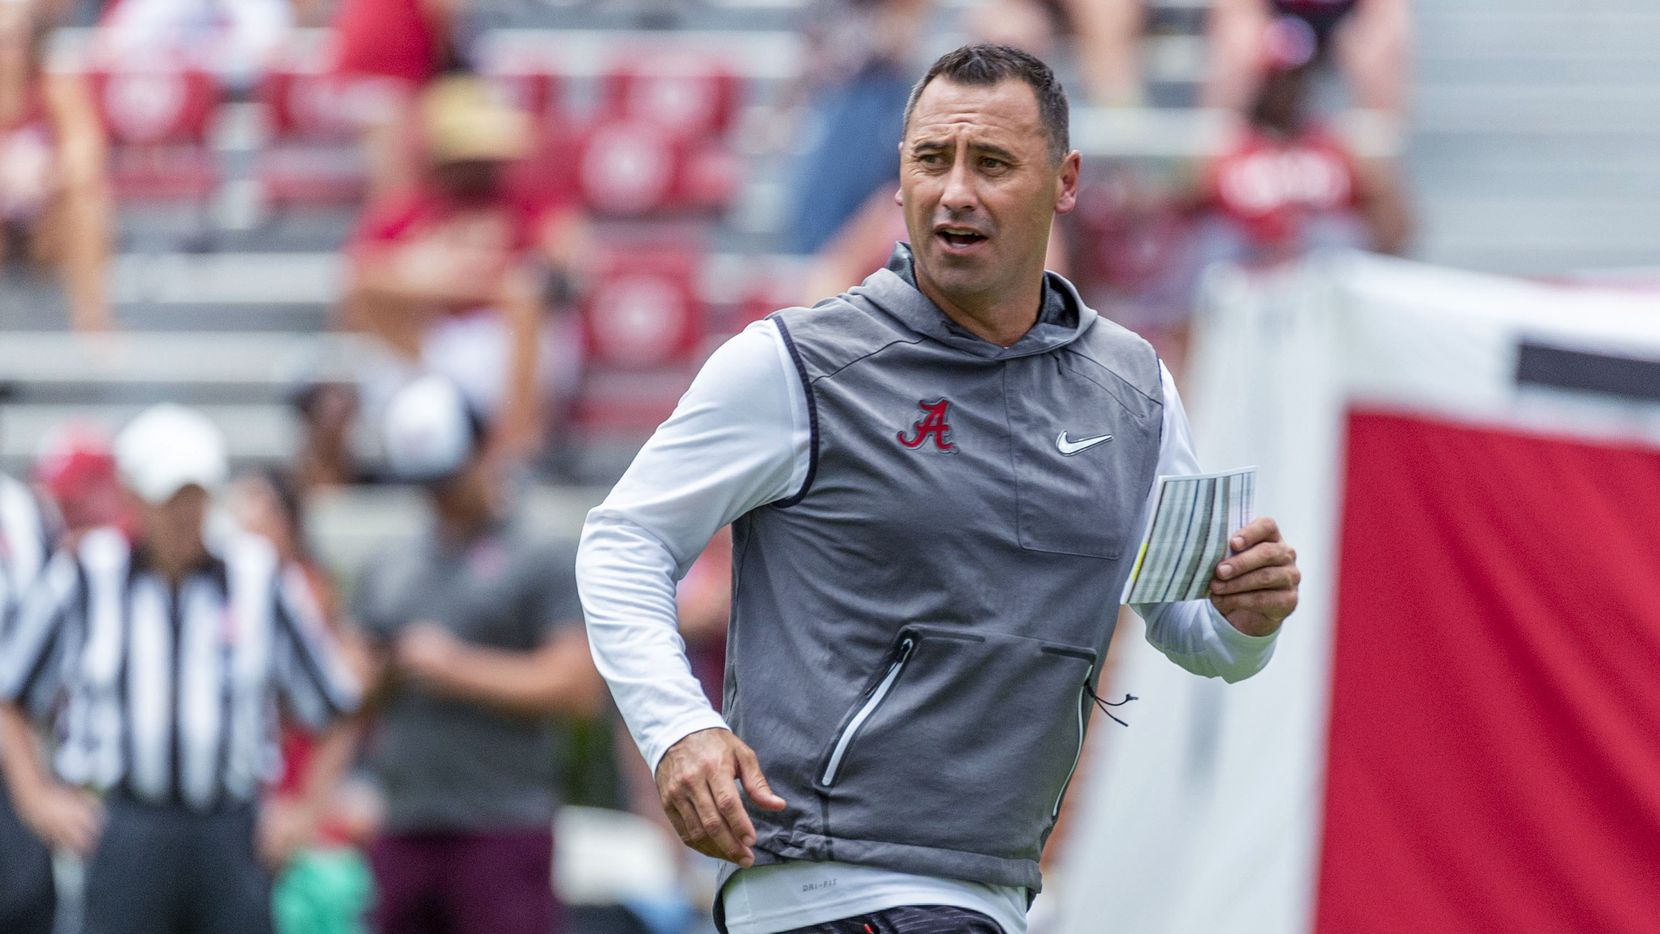 Alabama offensive coordinator Steve Sarkisian works his payers through drills during an NCAA college fall camp fan-day college football scrimmage, Saturday, Aug. 3, 2019, at Bryant-Denny Stadium in Tuscaloosa, Ala. (AP Photo/Vasha Hunt)